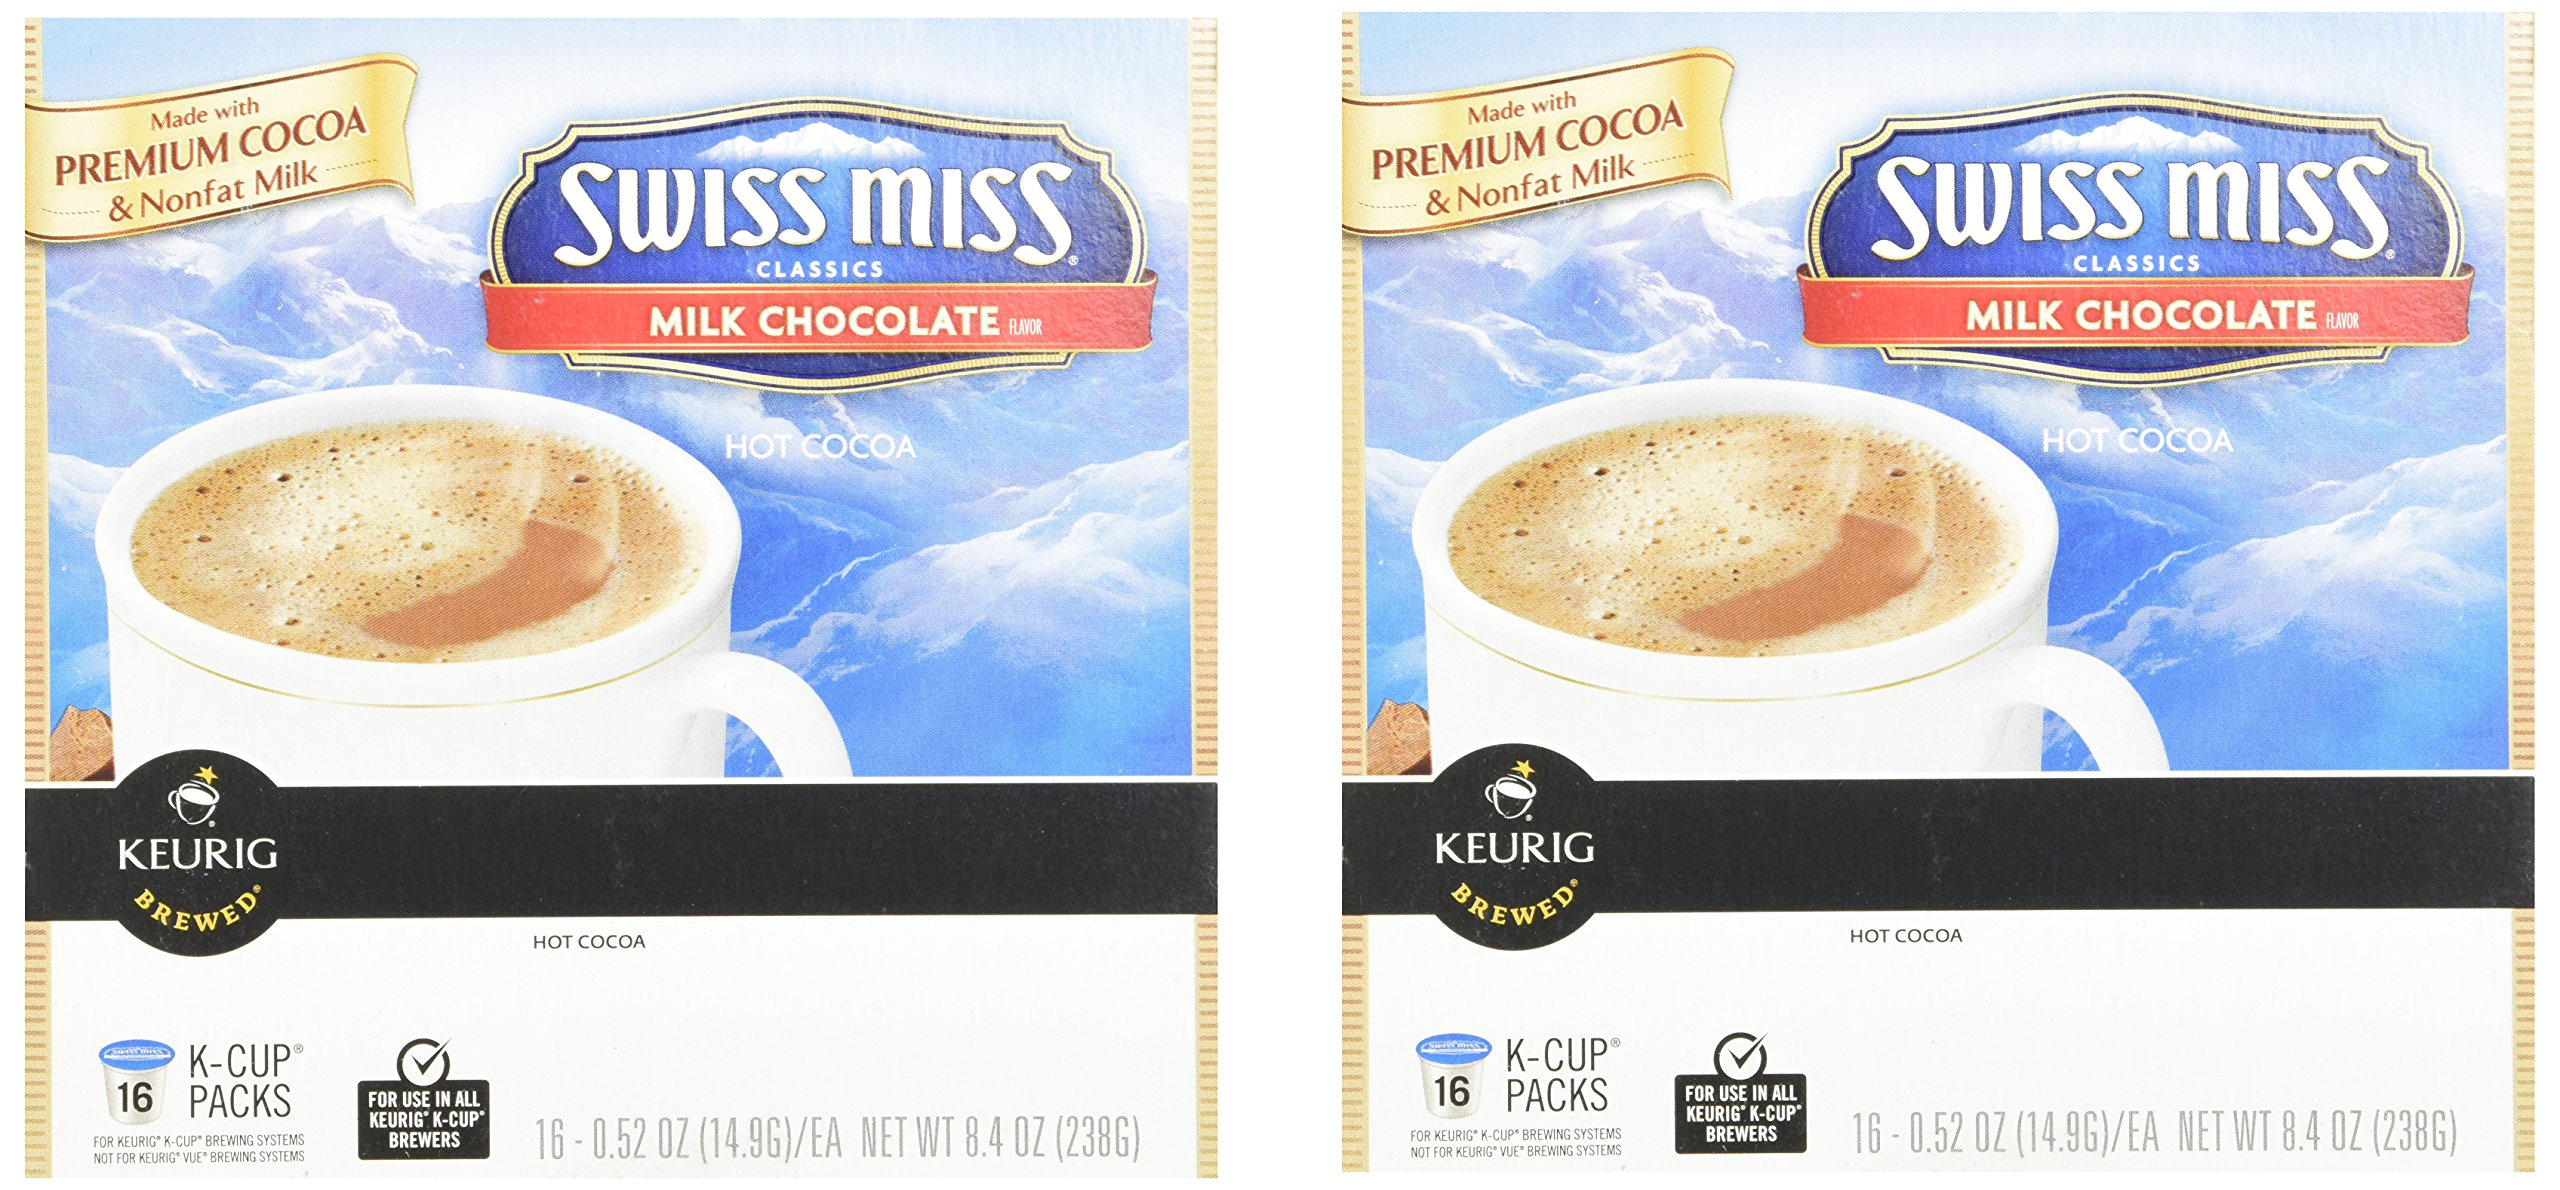 Swiss Miss Keurig K-cups Milk Chocolate Hot Cocoa - 32 Count by Swiss Miss (Image #5)